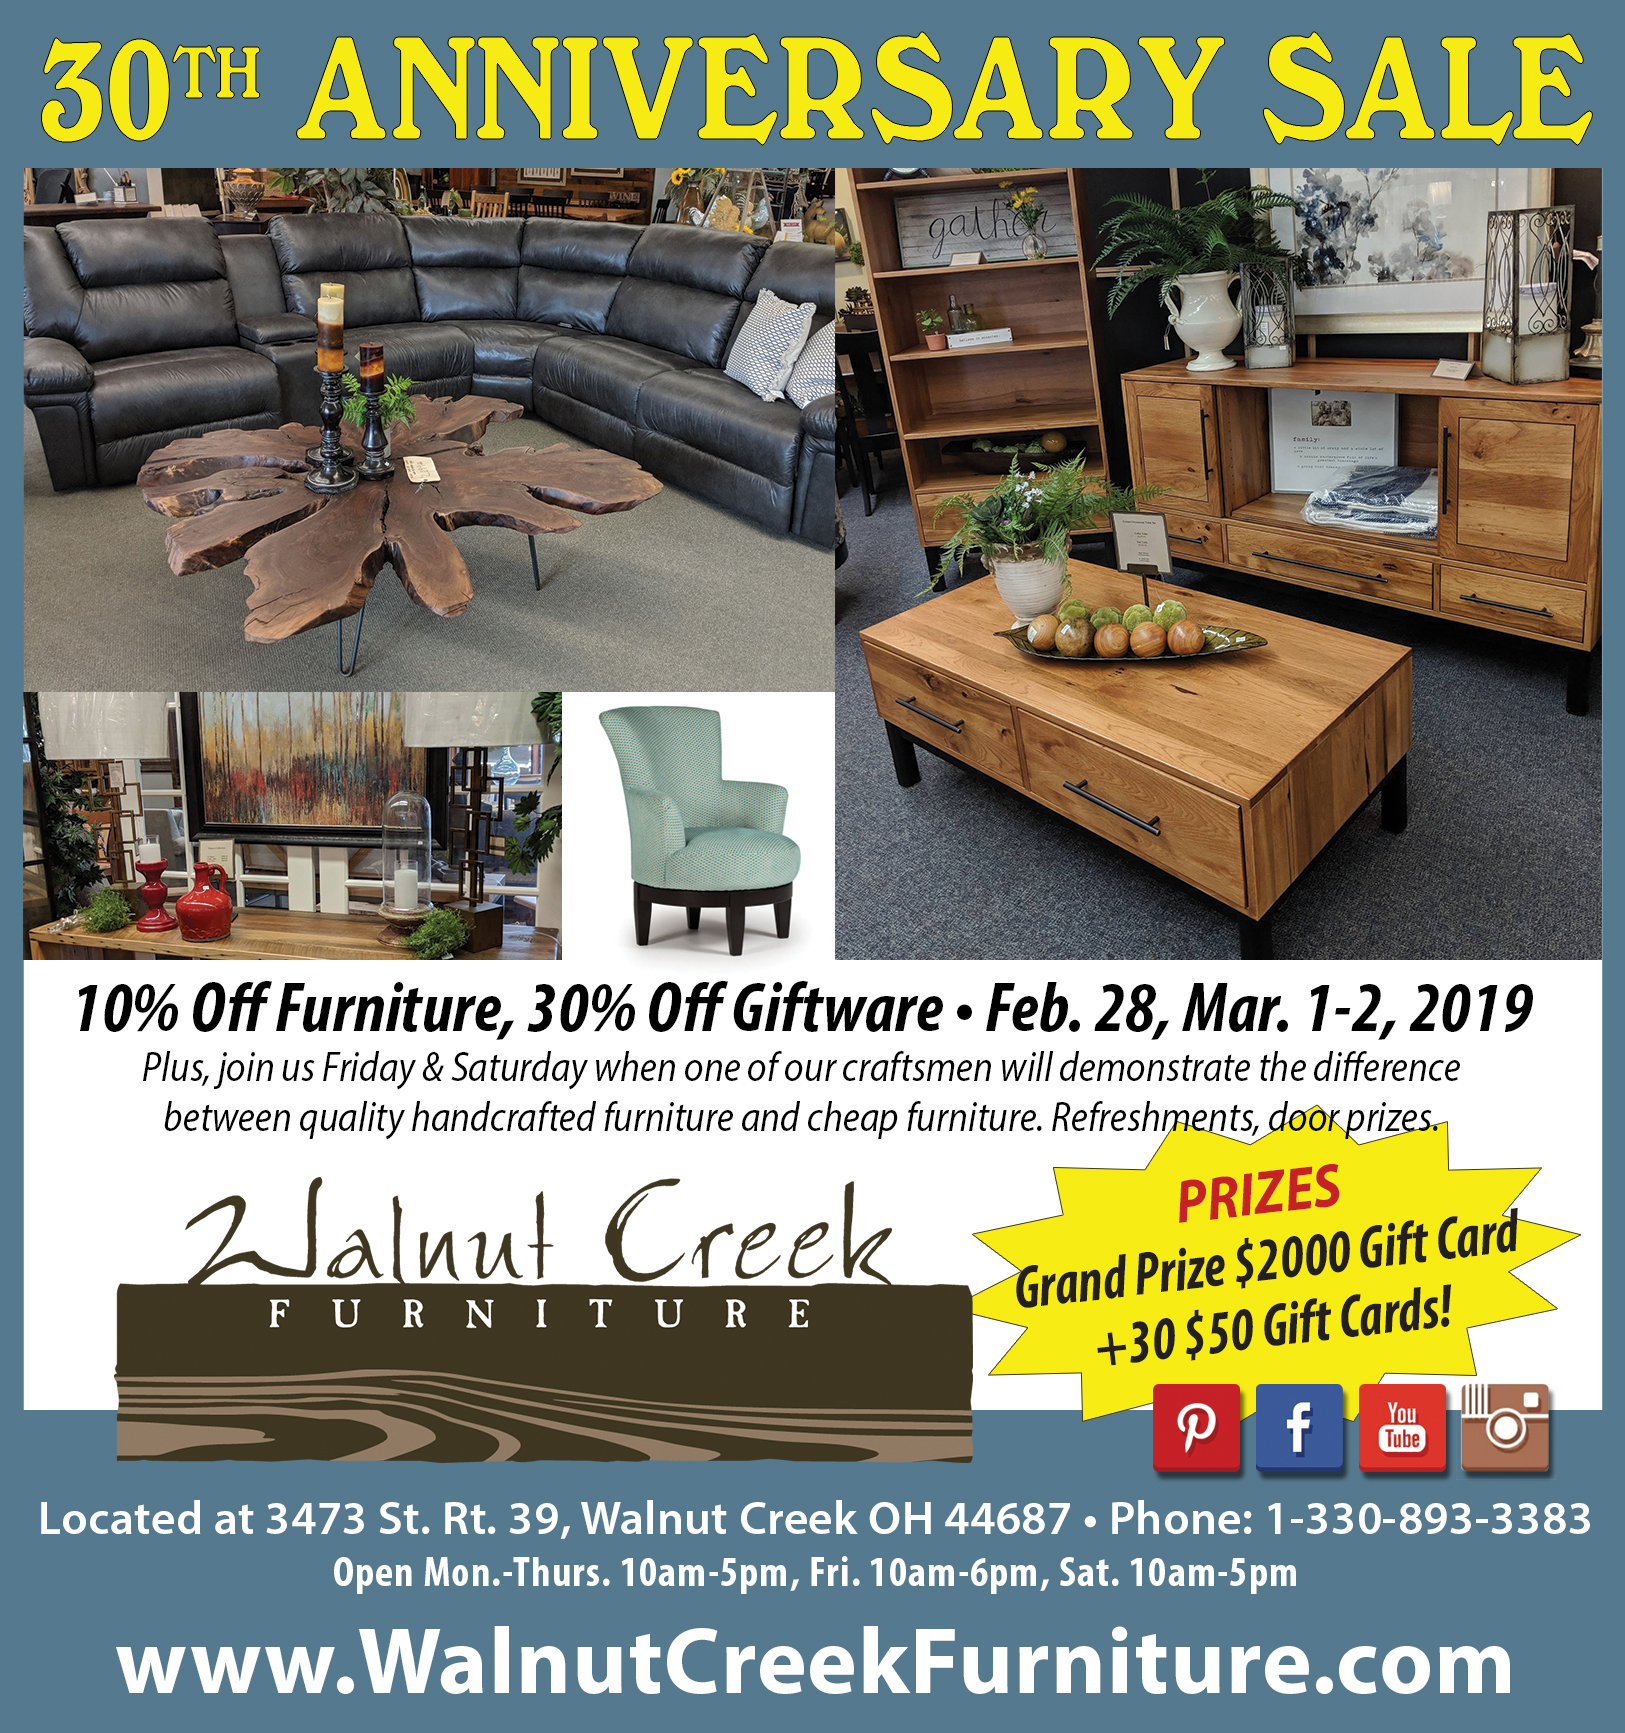 Walnut Creek Furniture 30th Anniversary Sale